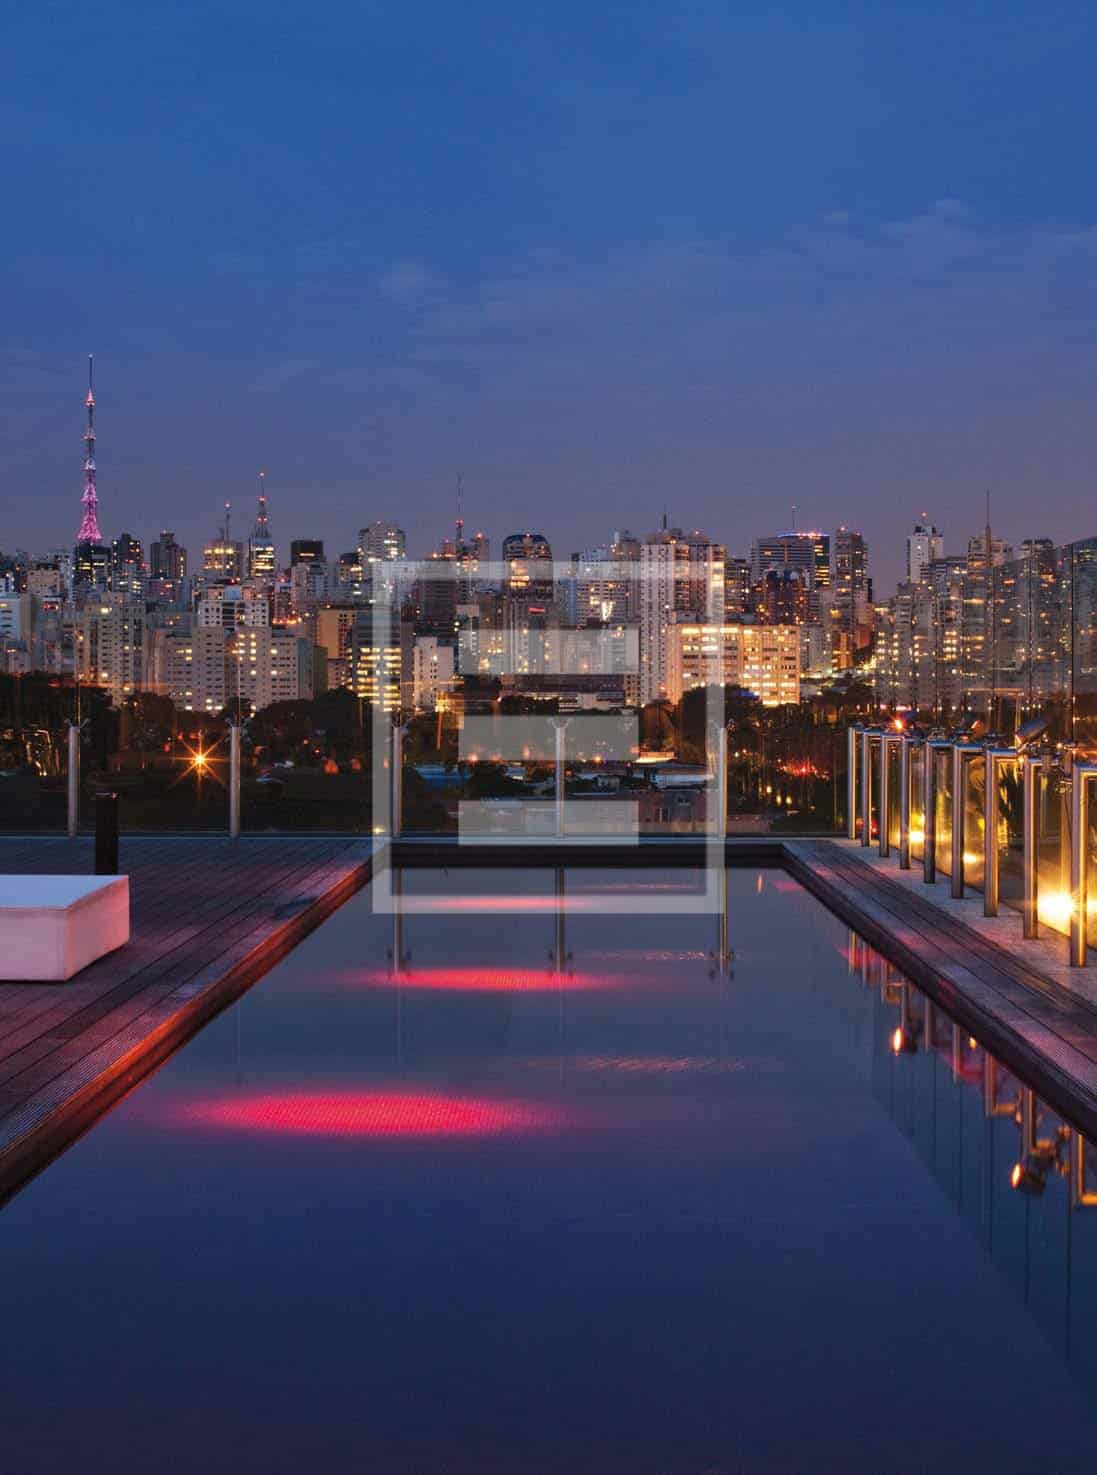 The view of Sao Paulo from the rooftop pool and bar is one of the finest in the city